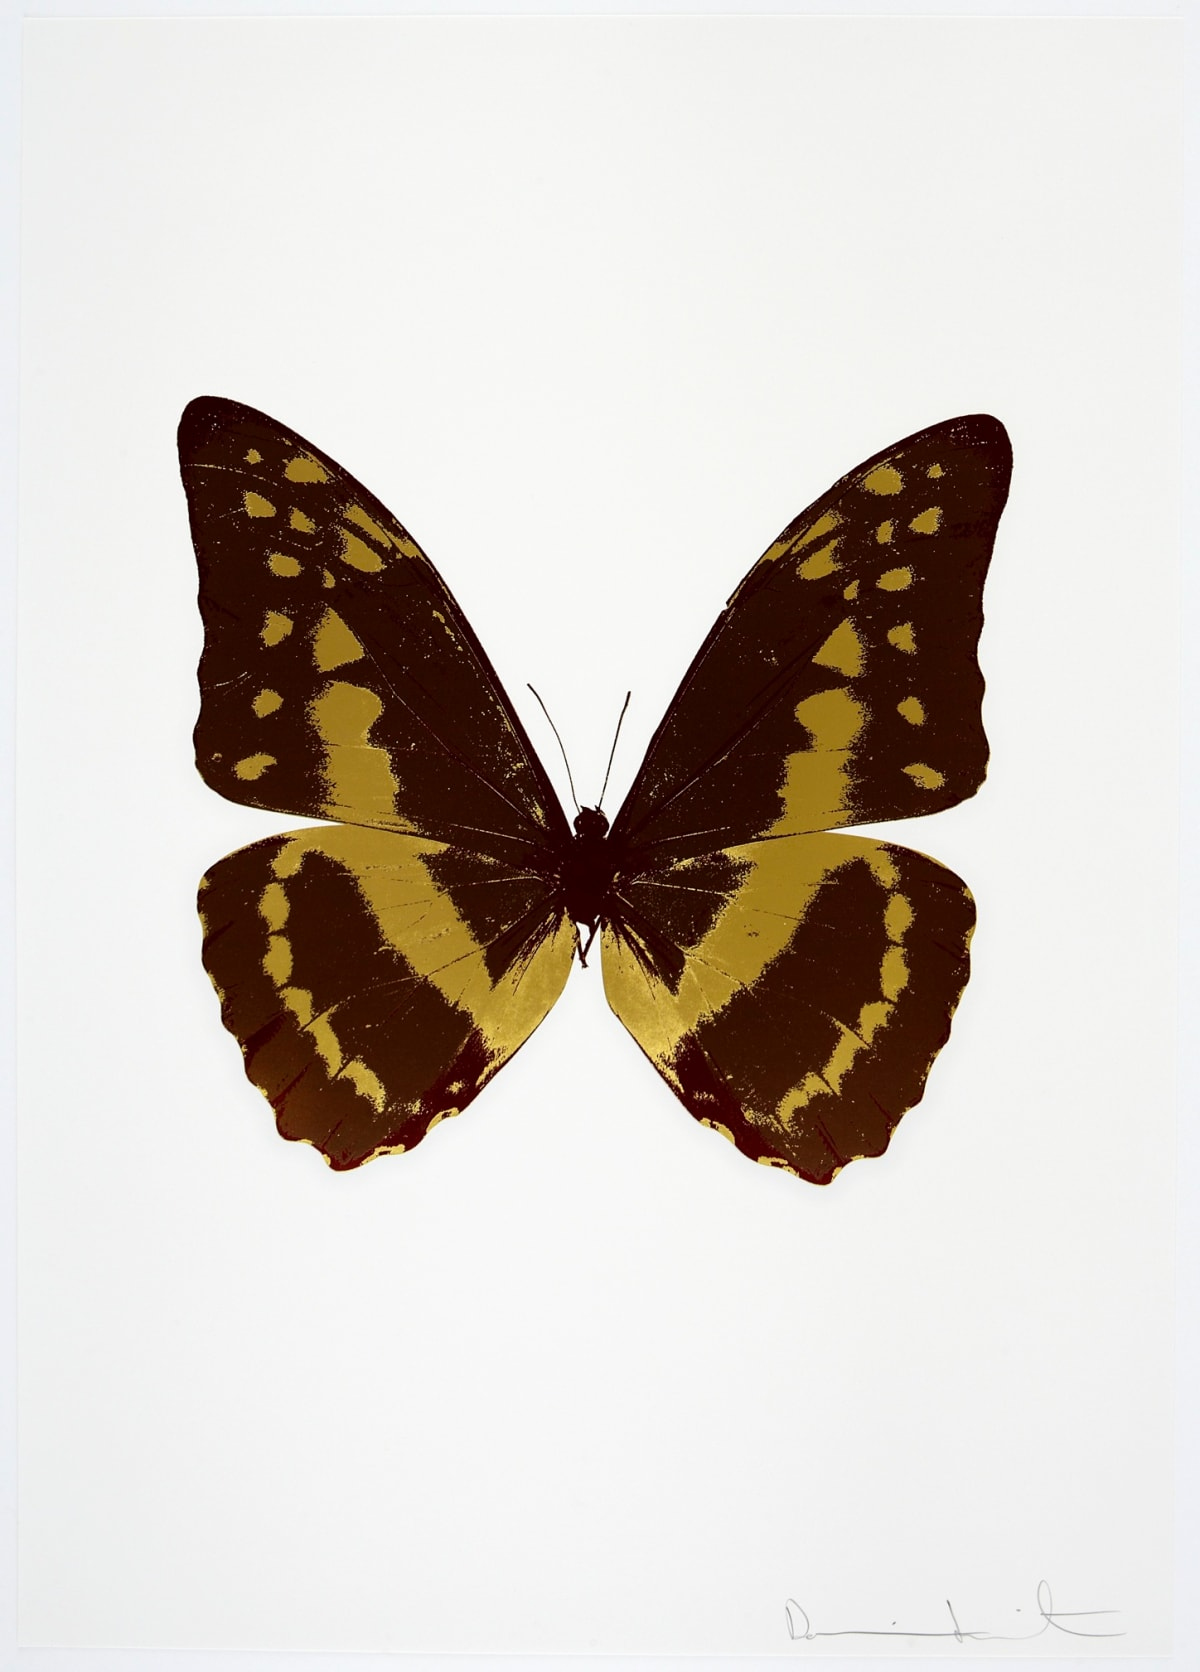 Damien Hirst The Souls III - Chocolate/Oriental Gold/Burgundy, 2010 3 colour foil block on 300gsm Arches 88 archival paper. Signed and numbered. Published by Paul Stolper and Other Criteria 72 x 51cm OC7906 / 660-9 Edition of 15